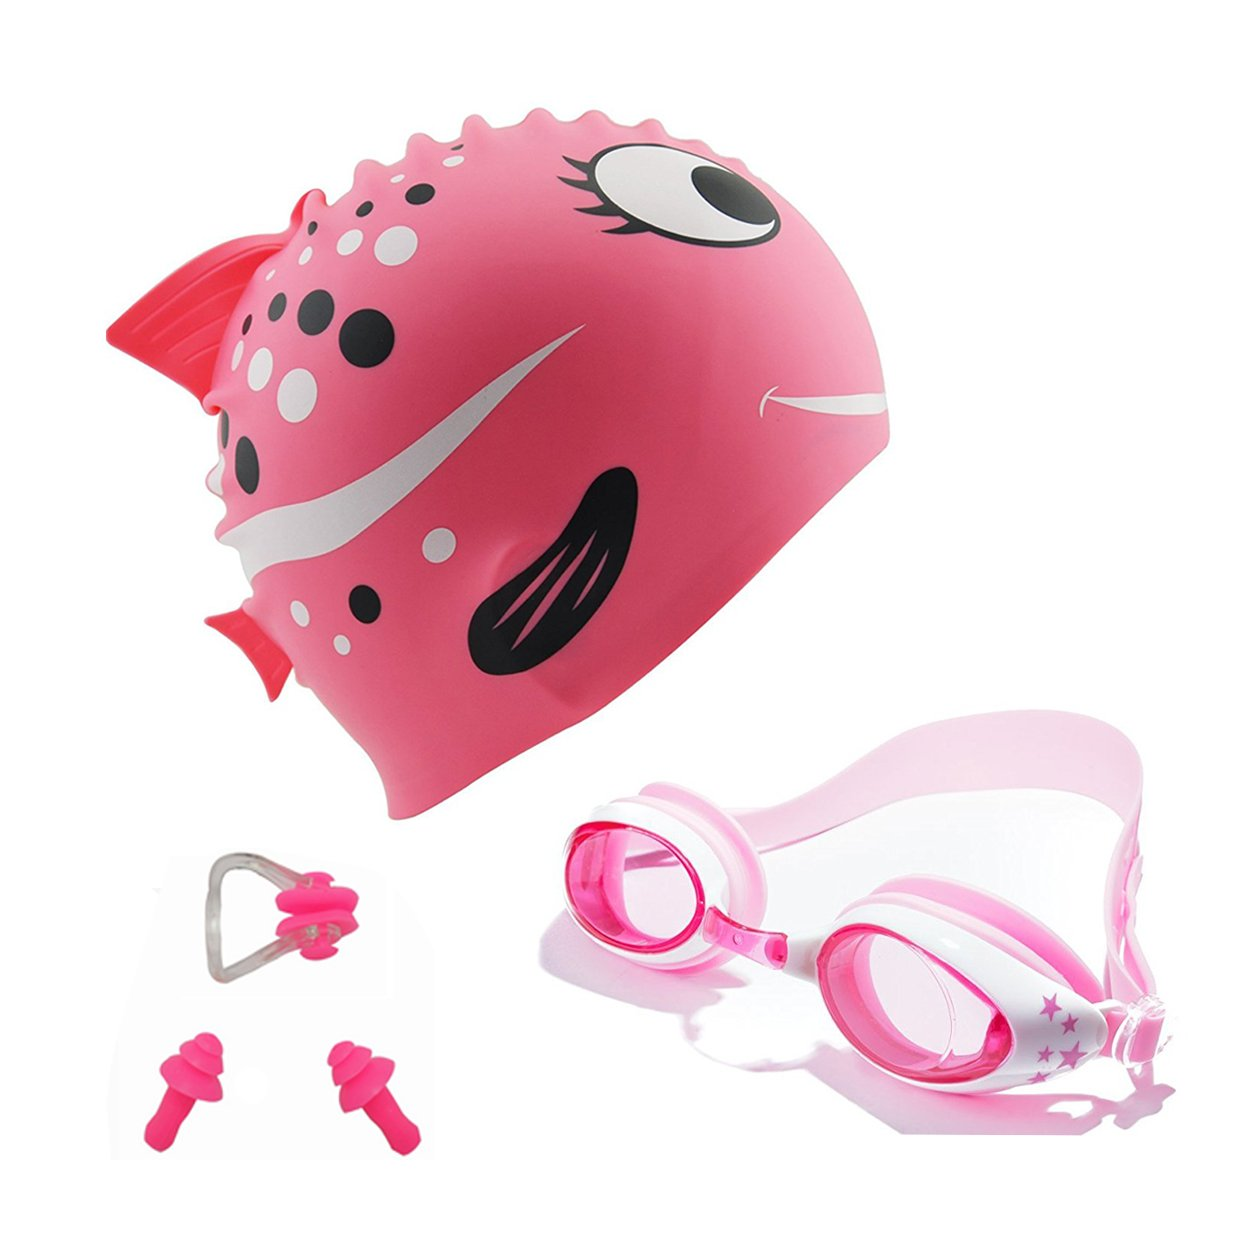 AmeiTech Kids Swim Cap,Cute Design Kids Fun Silicone Swim Caps - Swim Goggles with Nose Clip and Ear Plugs for Boys and Girls - Pink